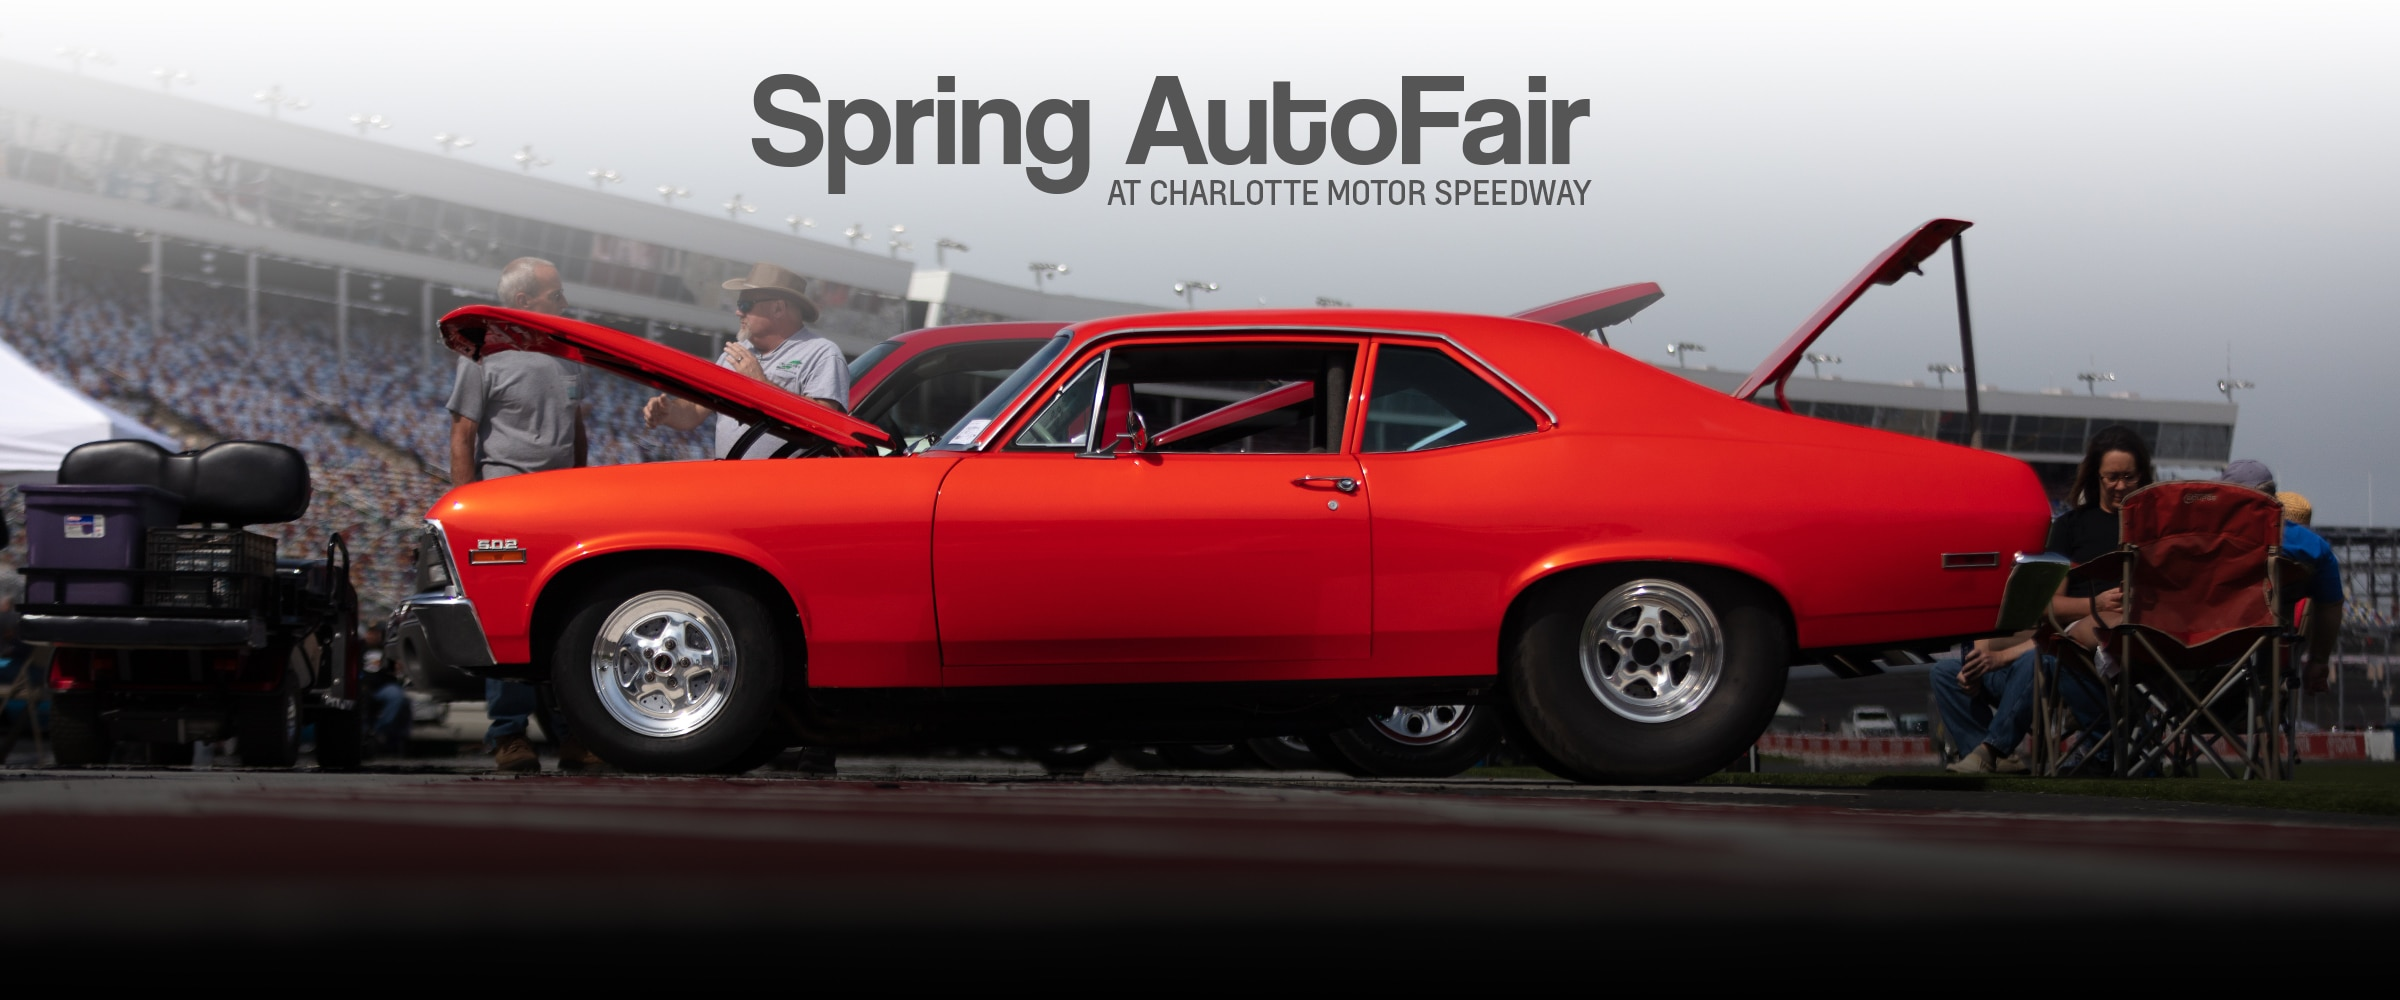 Vehicles, Events, Chevy, Chevrolet, Chevrolet Performance, Cars, Trucks, Car Shows, AutoFair, Spring AutoFair, Charlotte, Charlotte Motor Speedway, Where Racing Lives